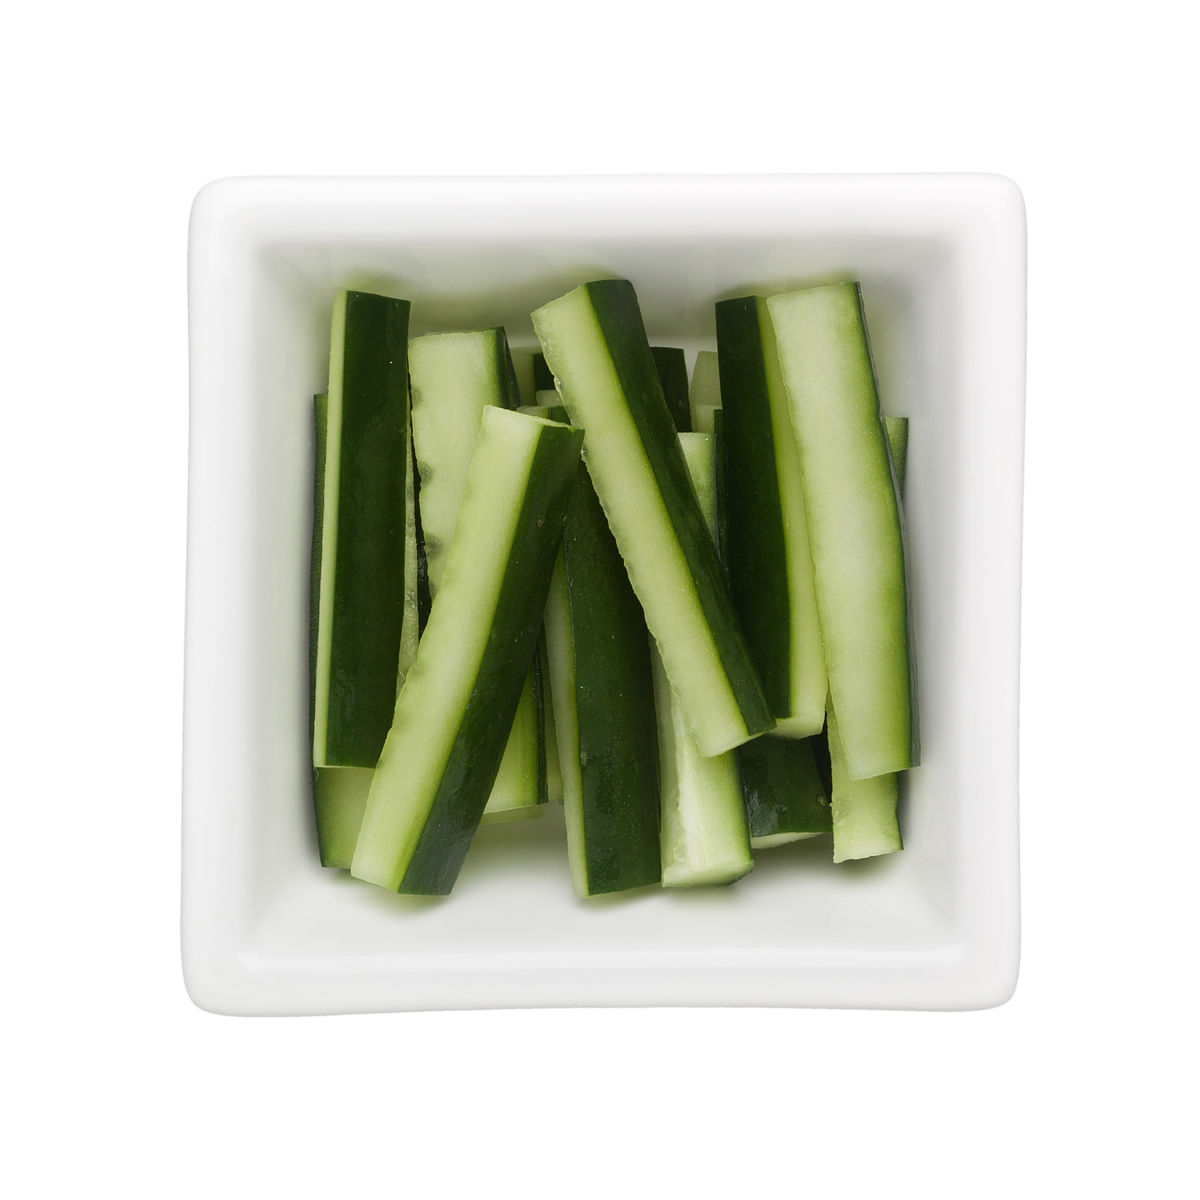 Cucumber sticks can be a great option for a quick healthy grab.